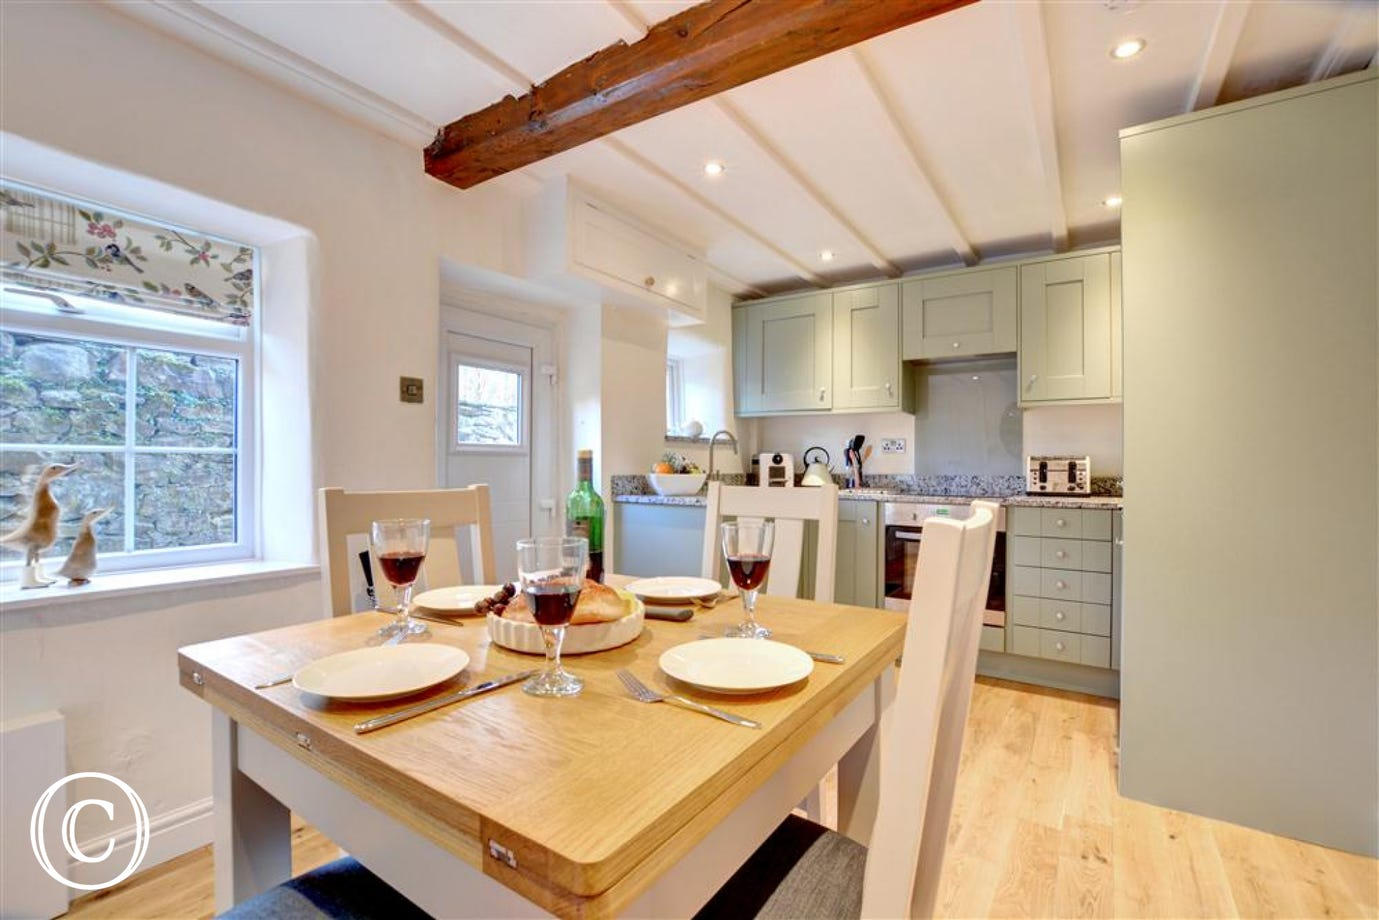 The open plan kitchen diner is ideal for a chat whilst cooking.